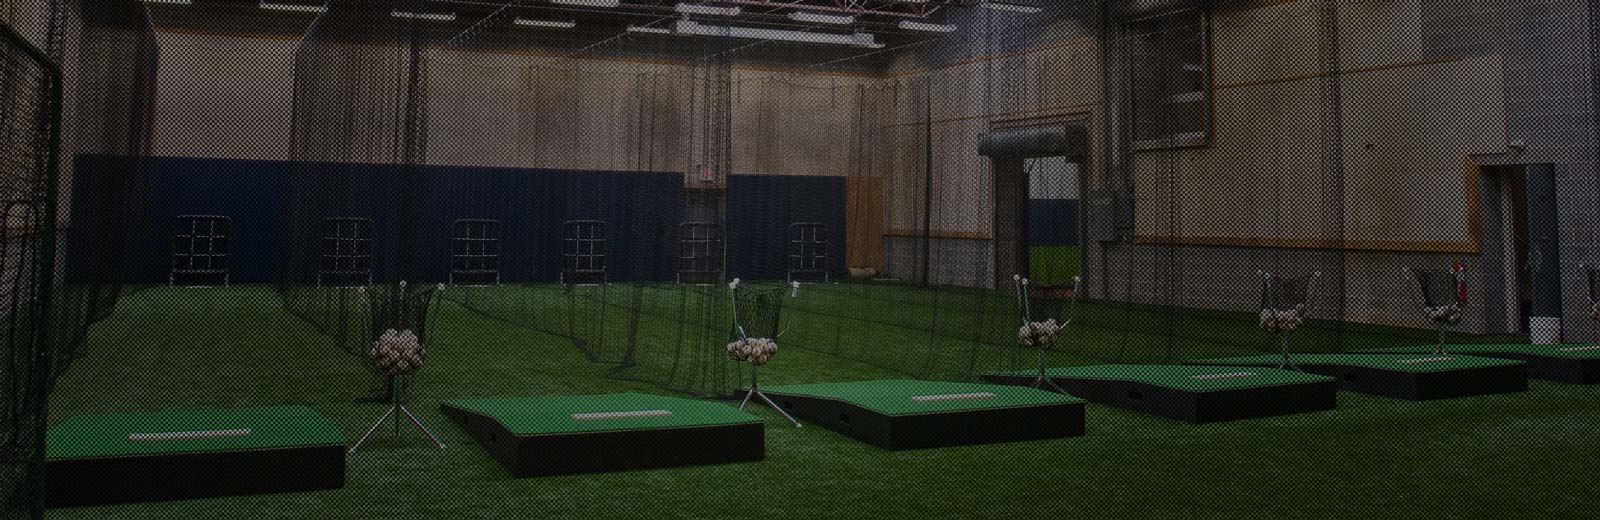 Indoor sports facility design on deck sports for Indoor facility design